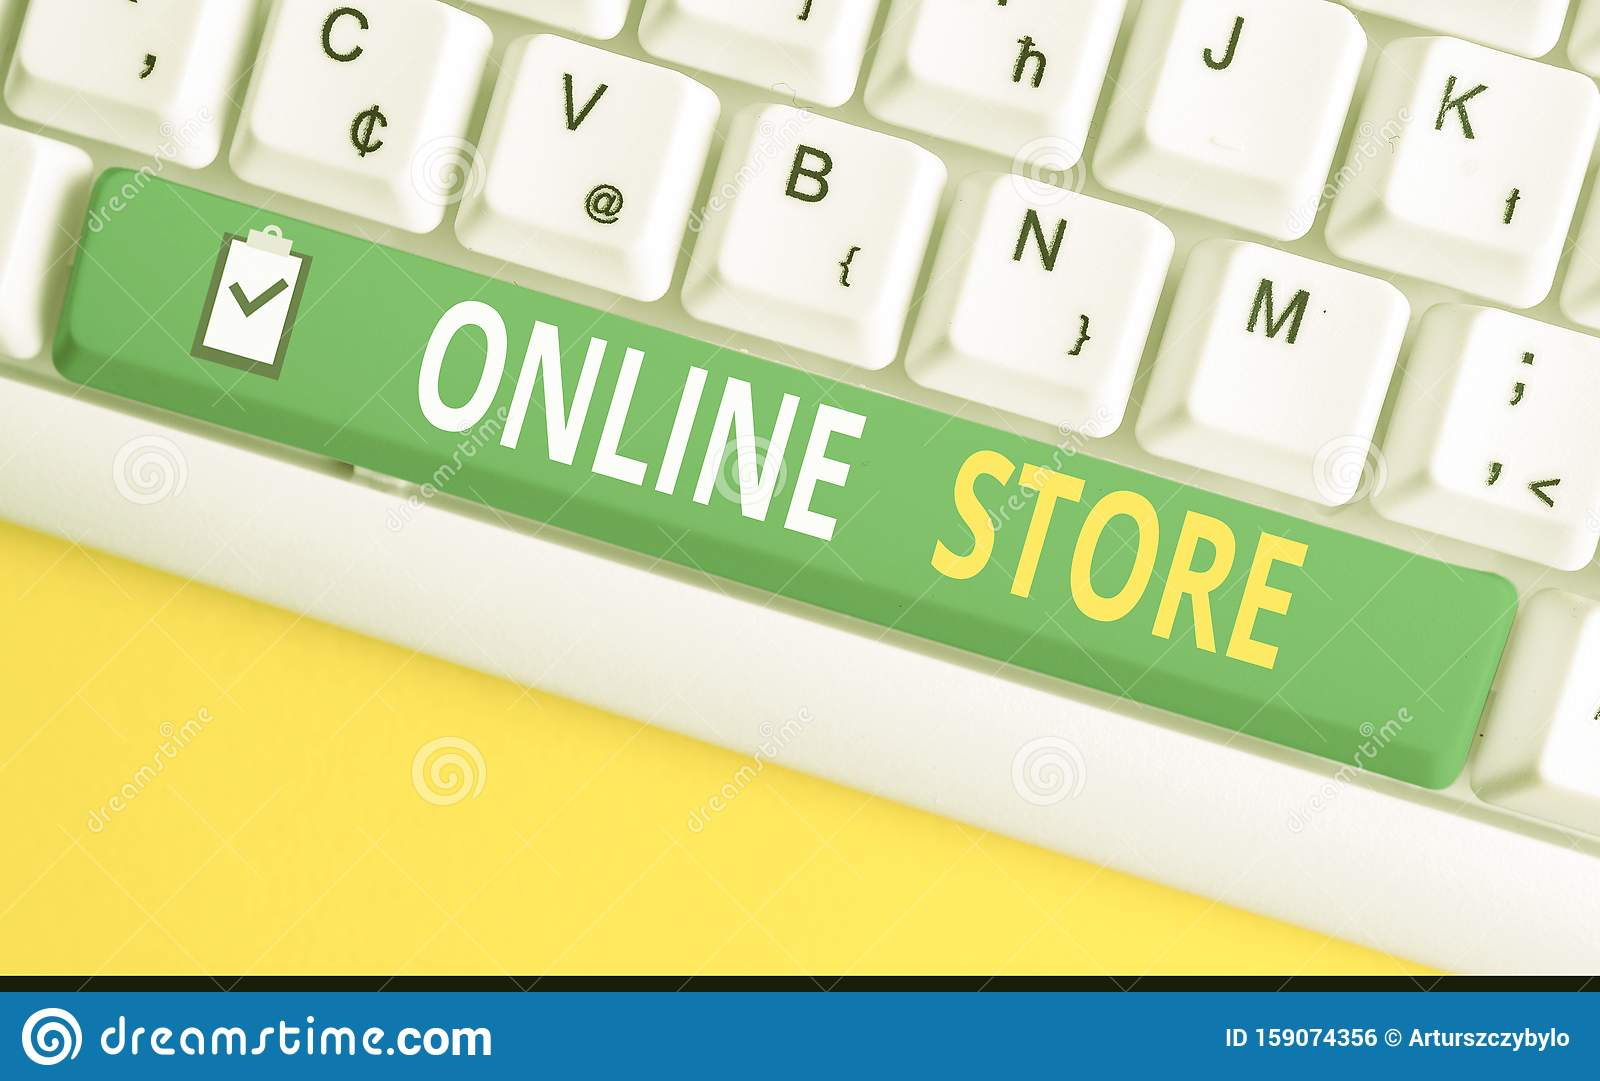 Handwriting Text Writing Online Store Concept Meaning A Website That Offers Items For Sale And Accept Credit Cards Stock Photo Image Of Credit Computer 159074356